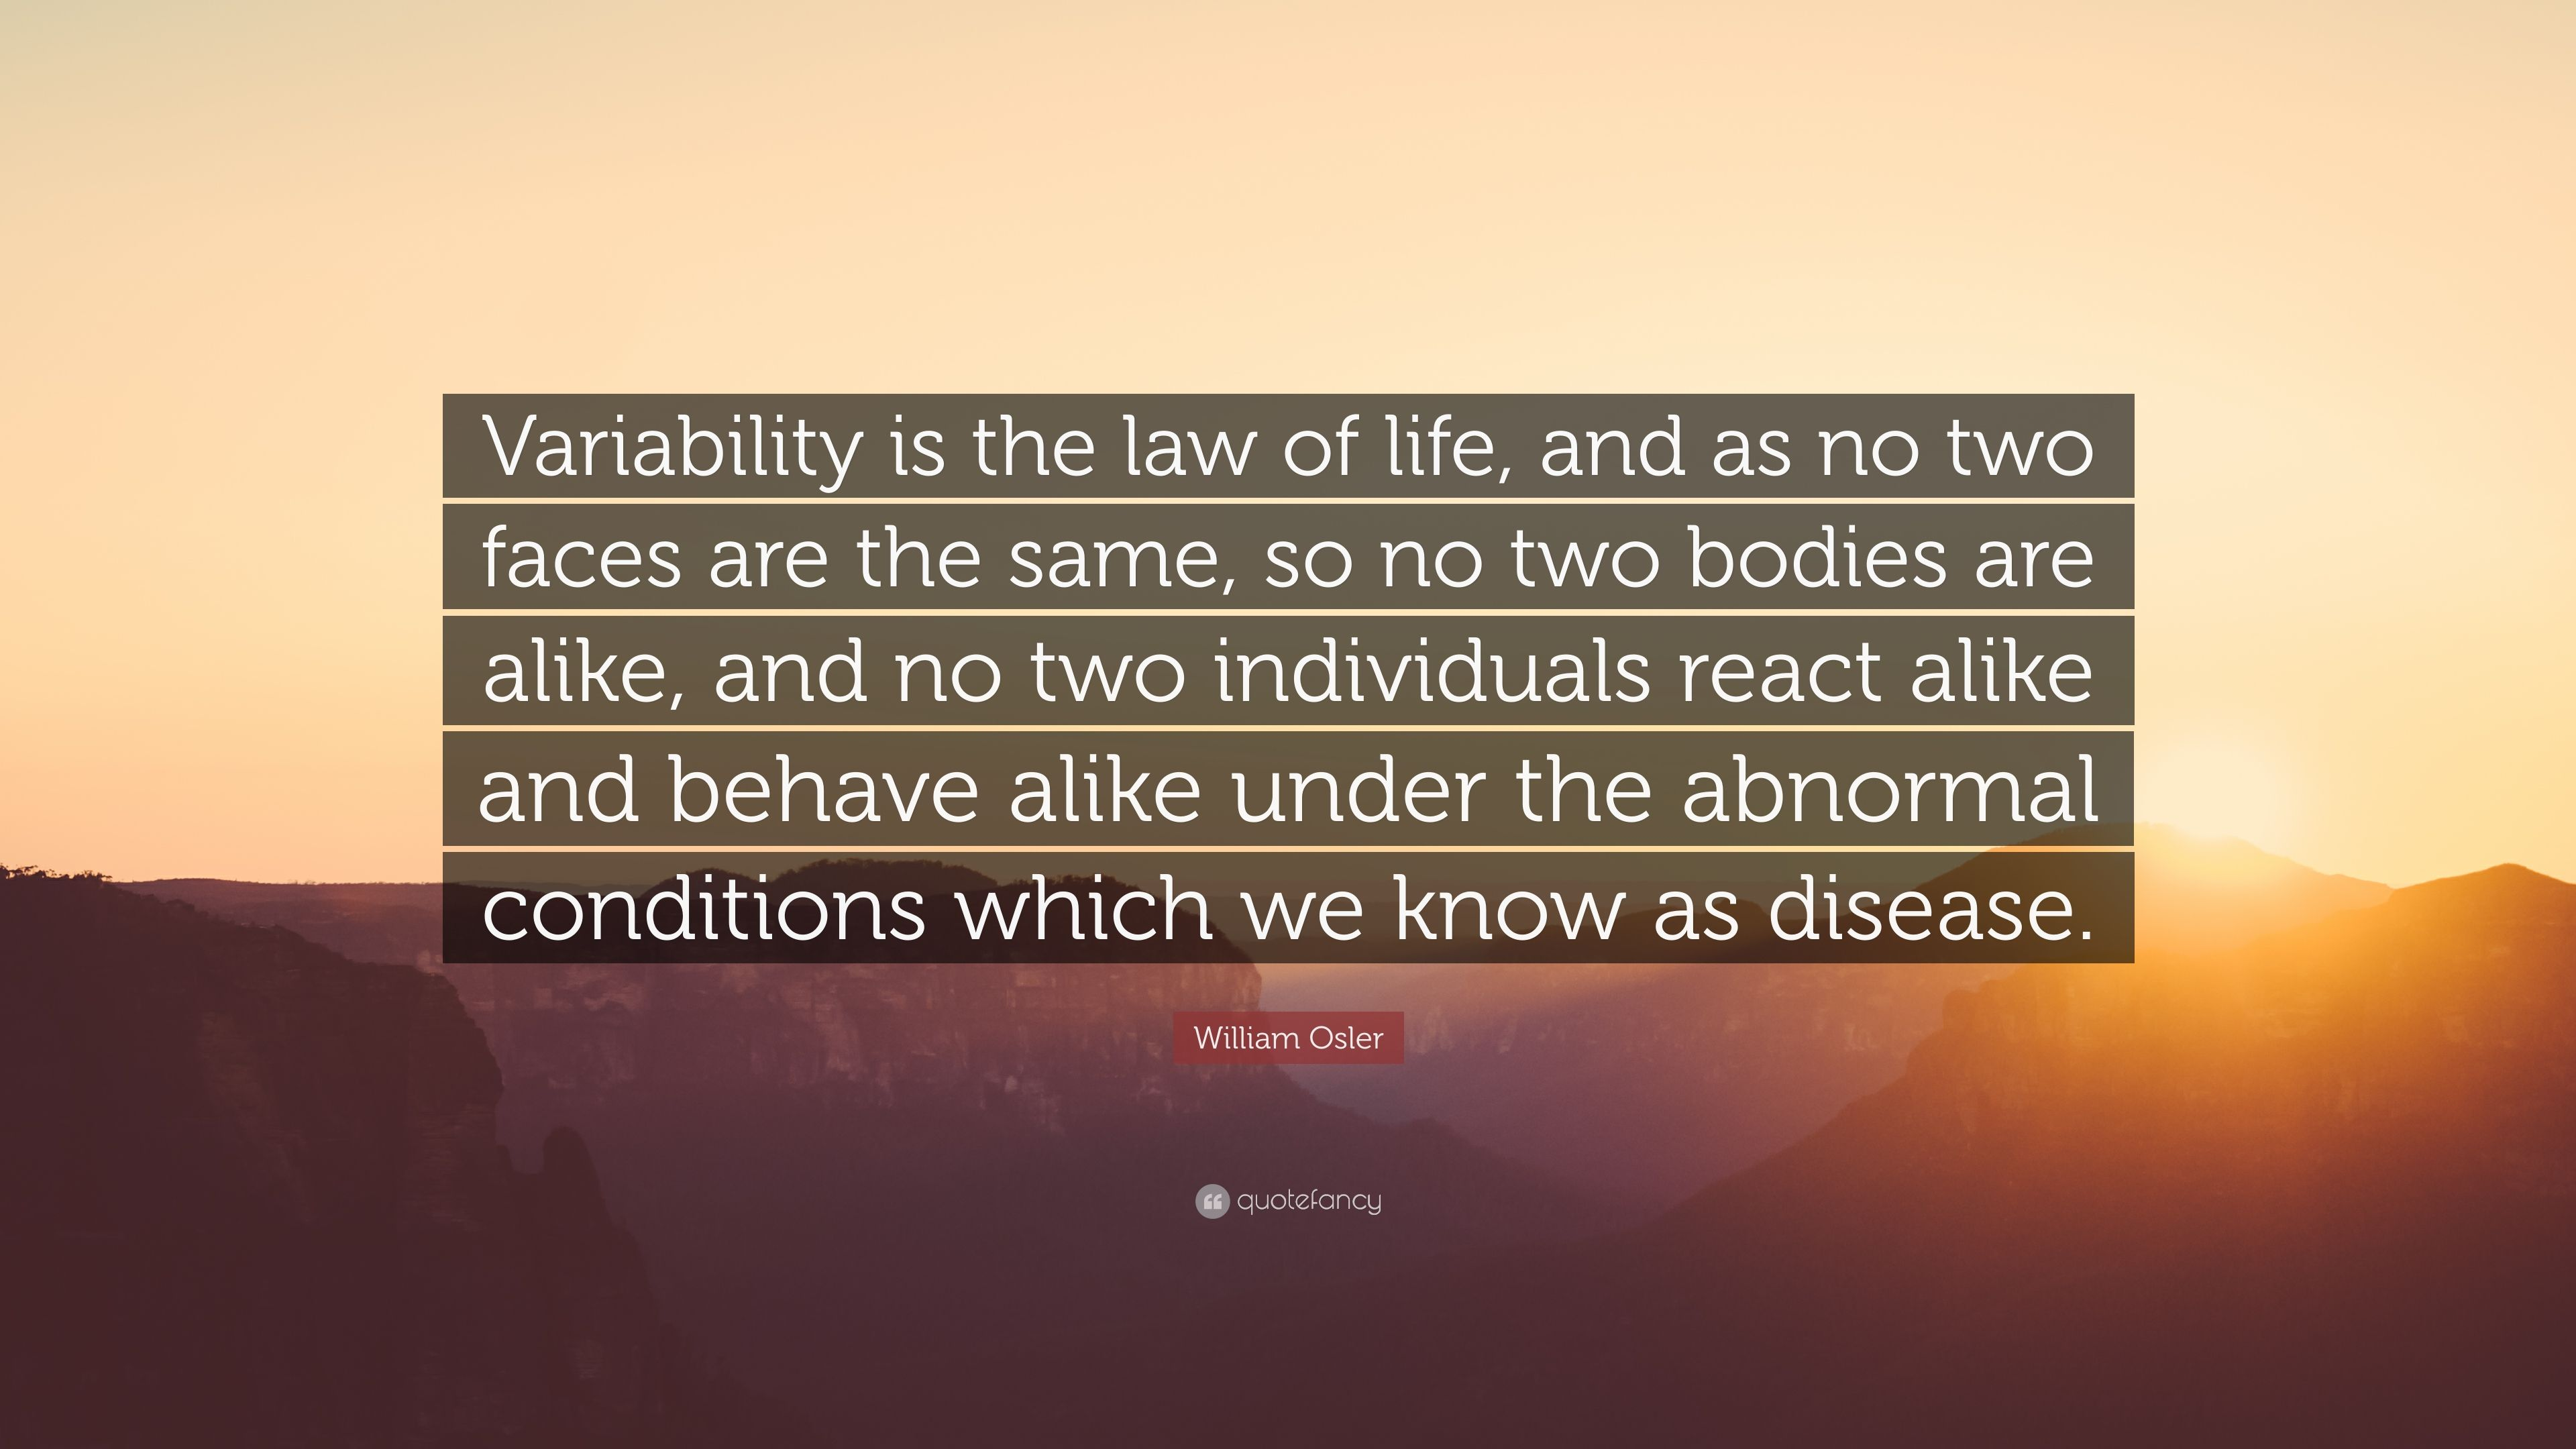 Laws Of Life Quotes William Osler Quote U201cVariability Is The Law Of Life And  As